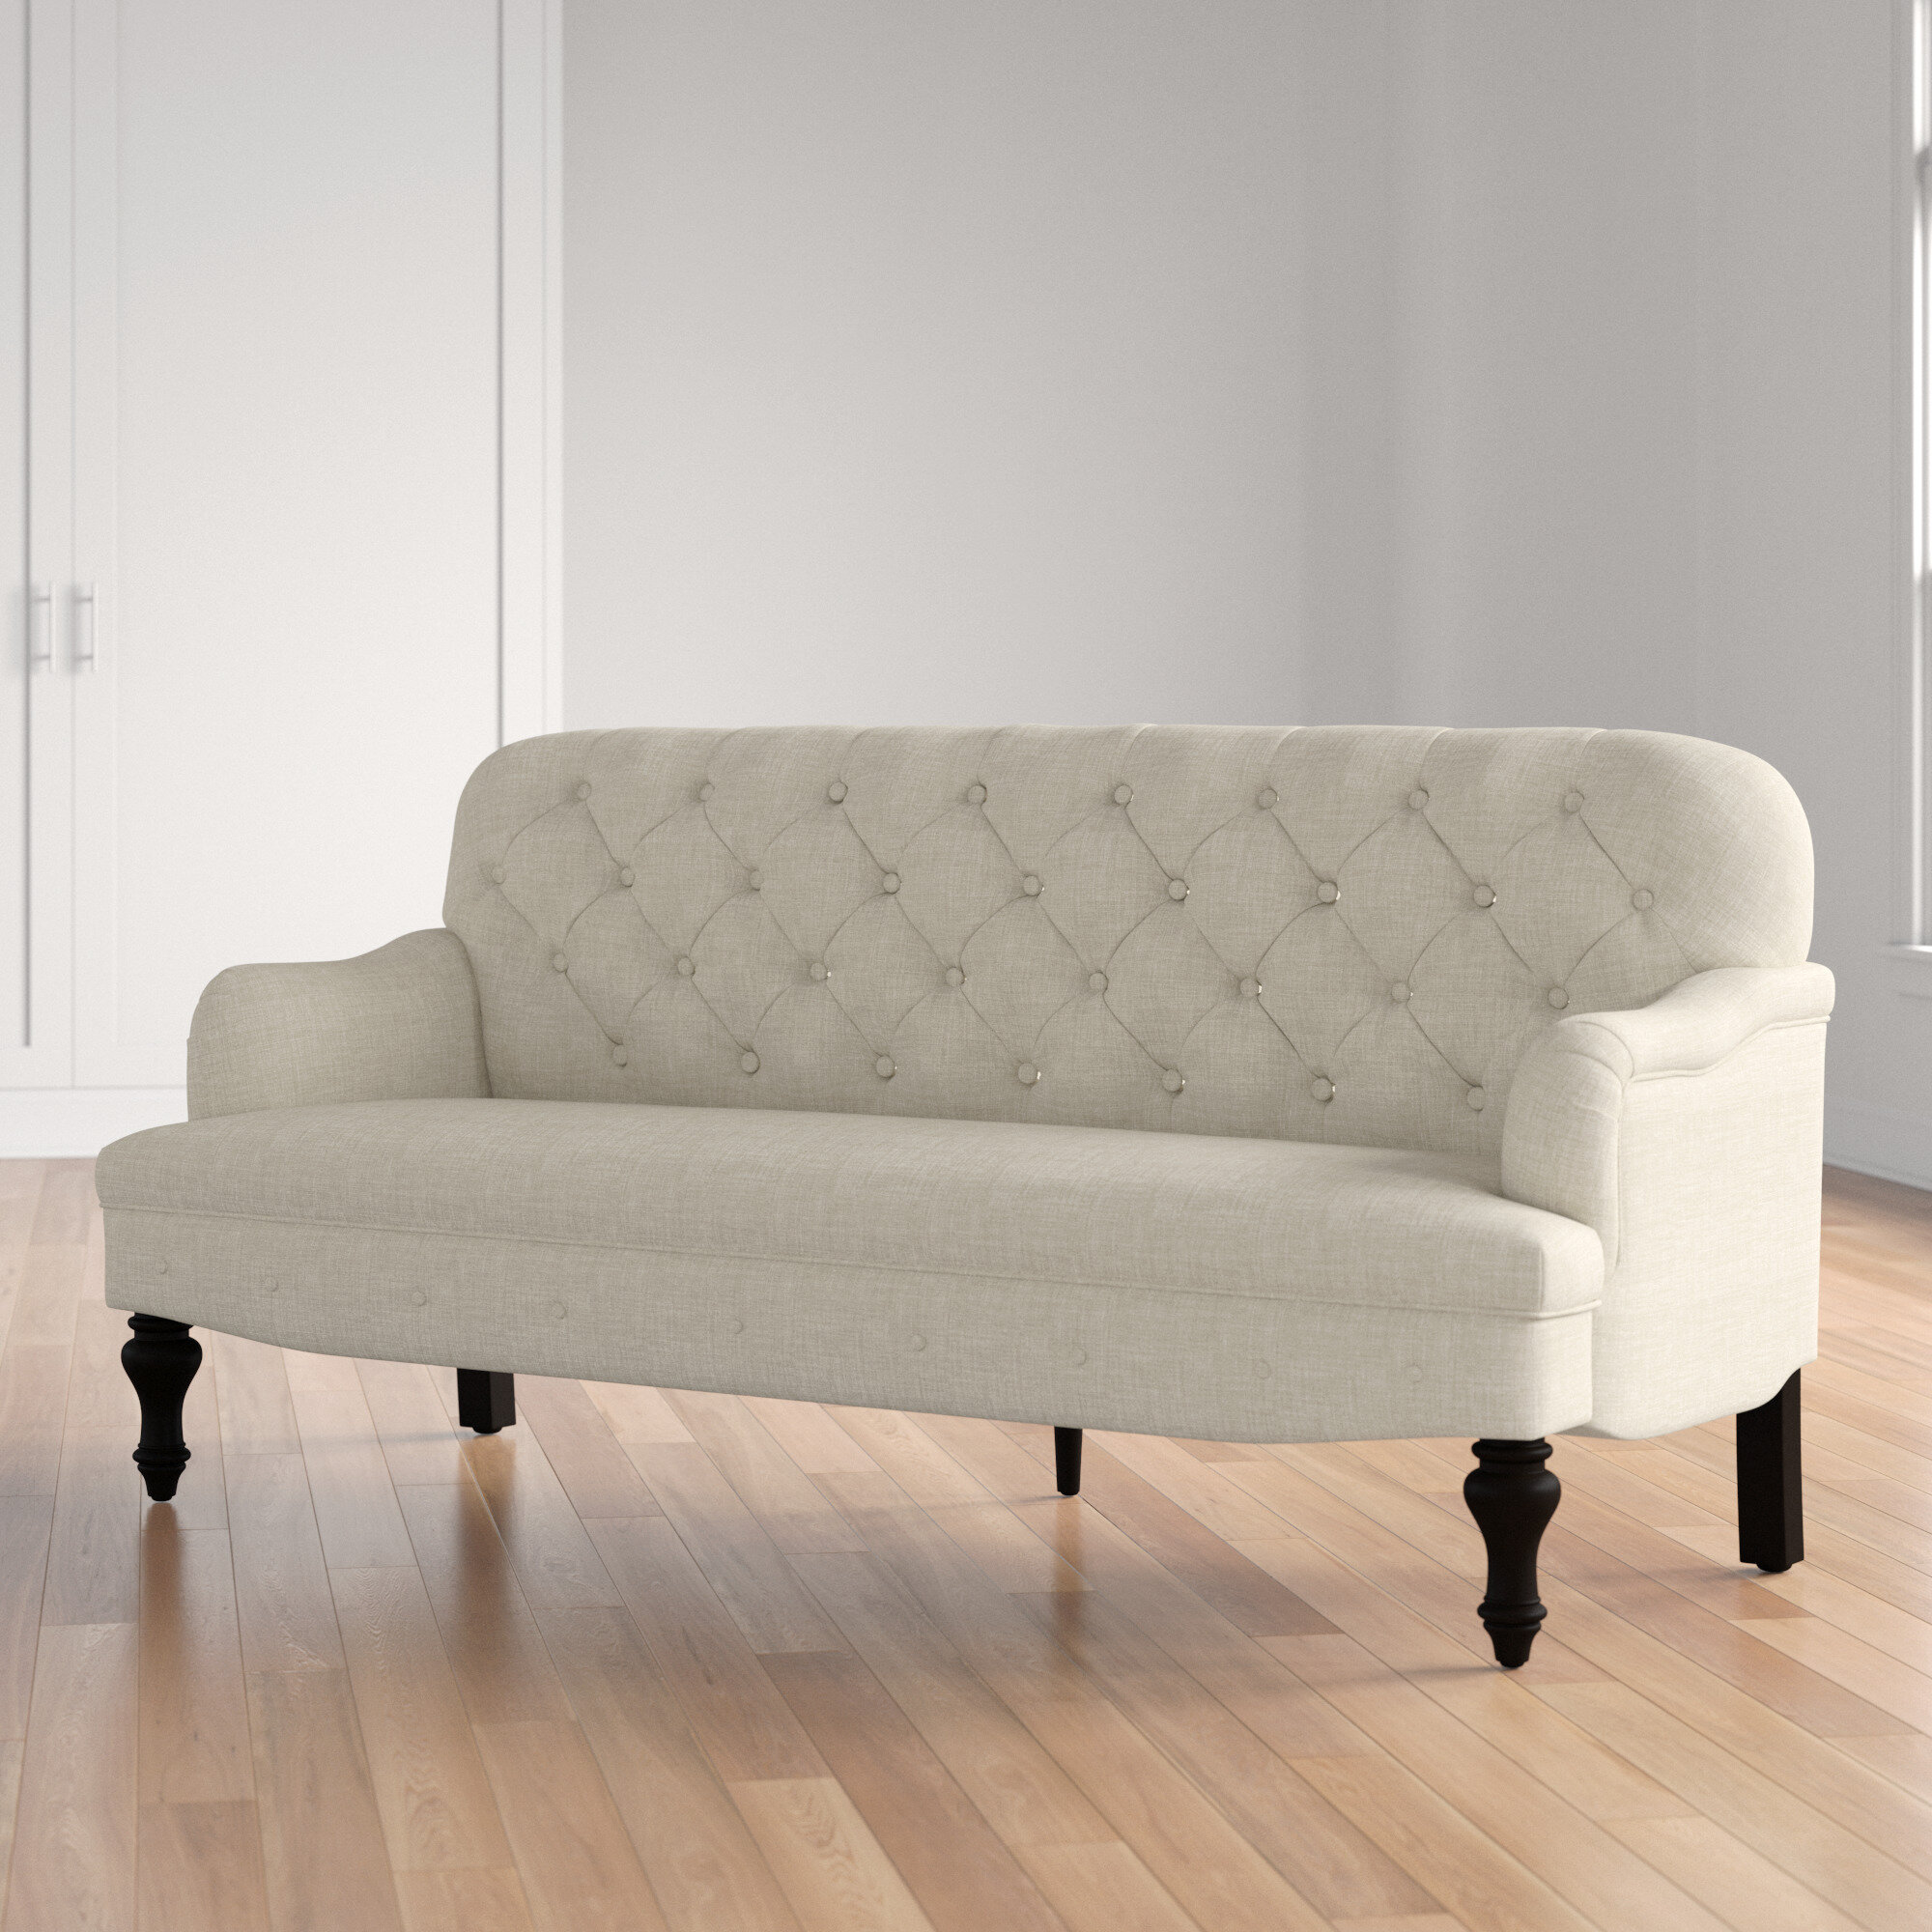 Miraculous Janay Tufted Sofa Download Free Architecture Designs Scobabritishbridgeorg